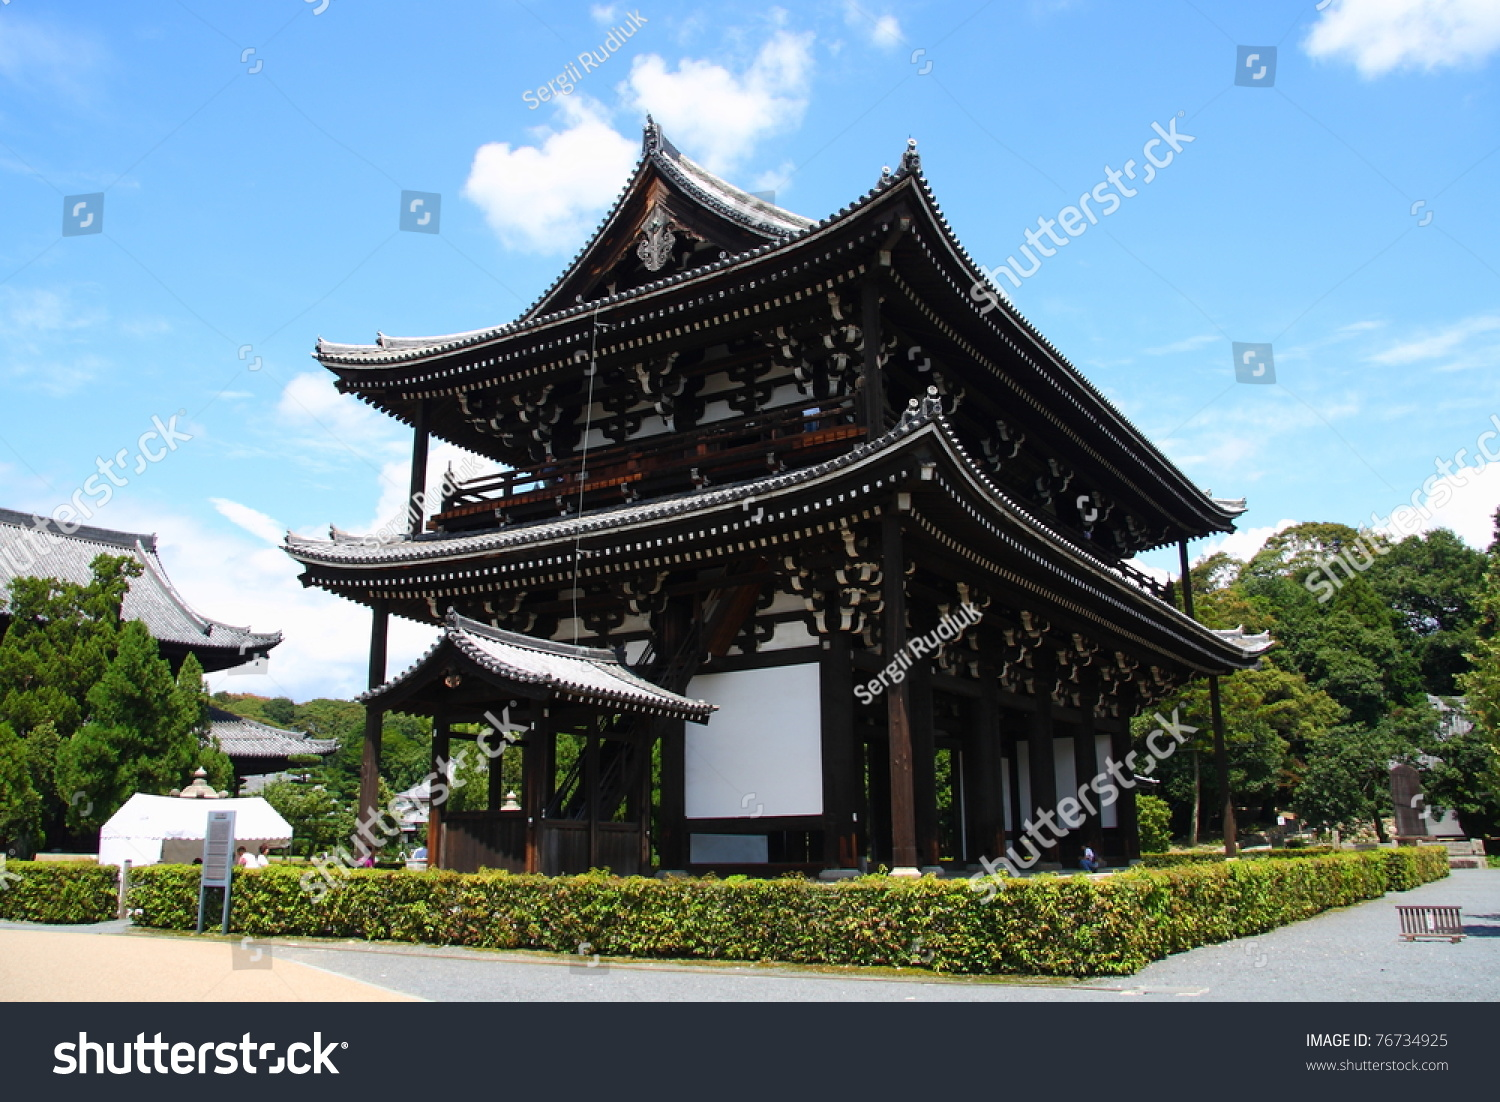 Traditional japanese architecture (gate to the Tofuku-ji temple in Kyoto)